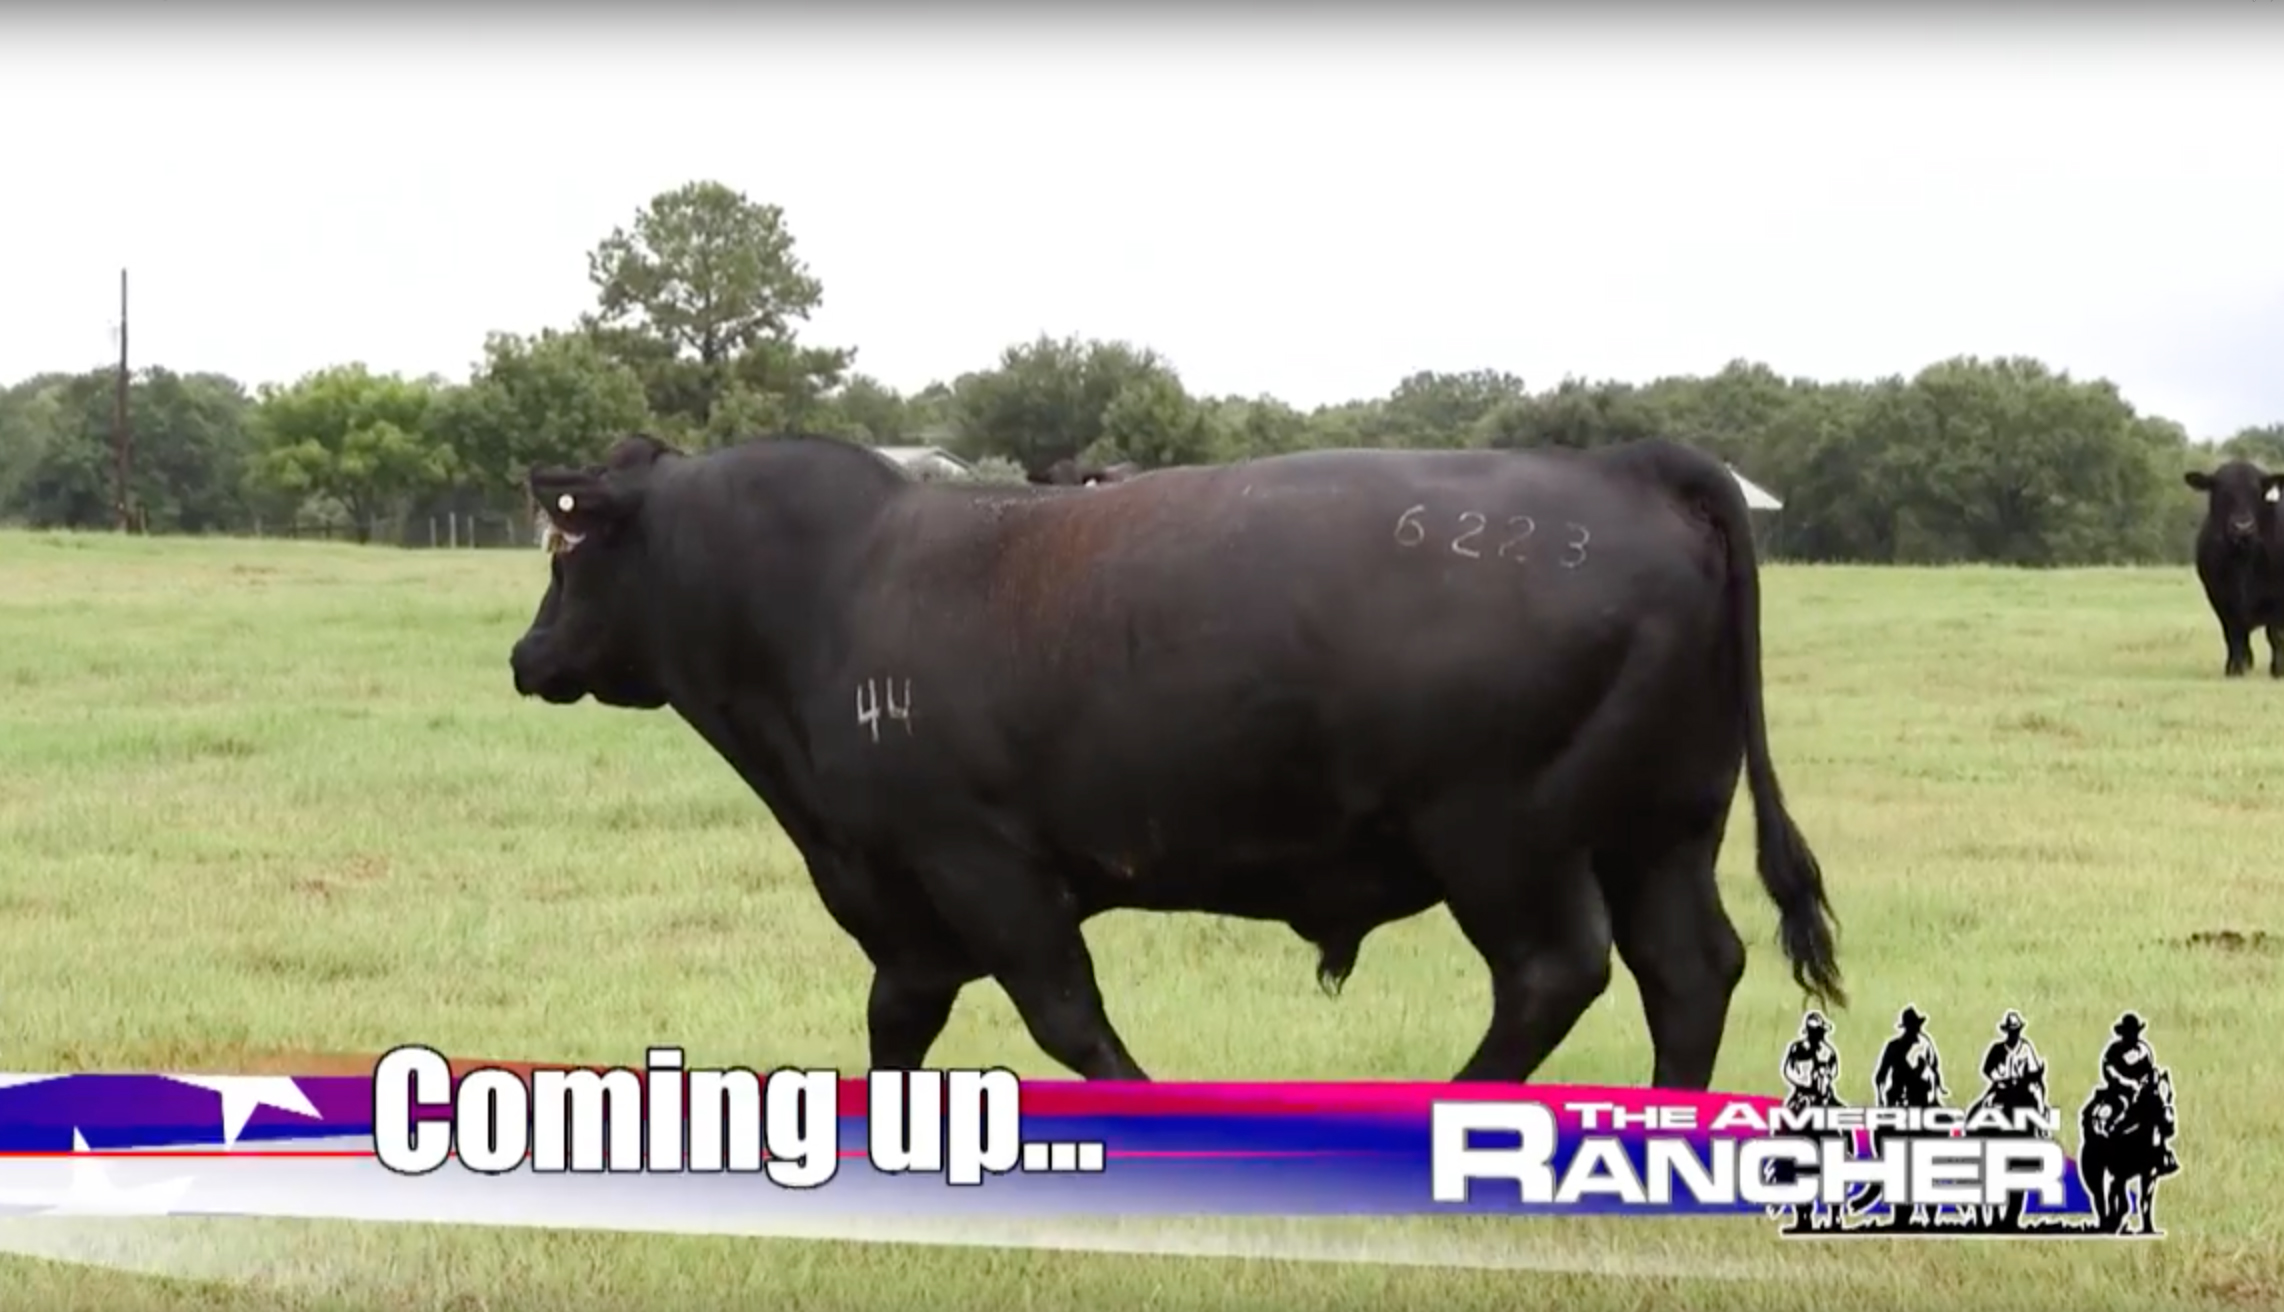 The American Rancher 2018 - Walmart Branded Beef Program